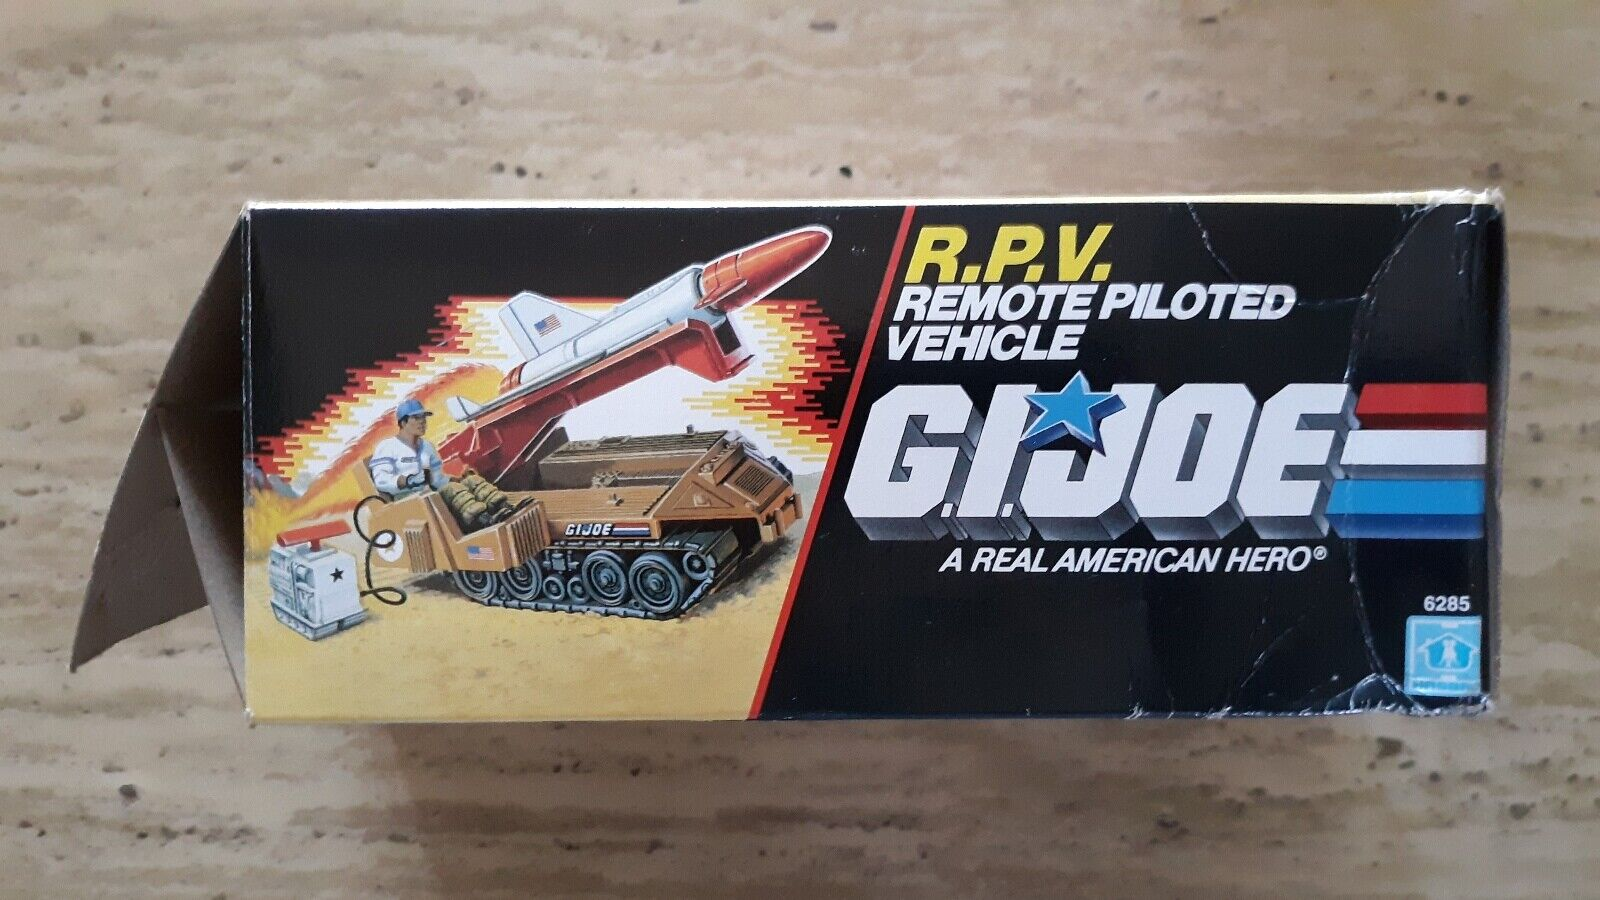 Vintage GI Joe 1988 R.P.V. R.P.V. R.P.V. Hasbro Remote Piloted Vehicle  FREE ACTION FIGURE   df9016